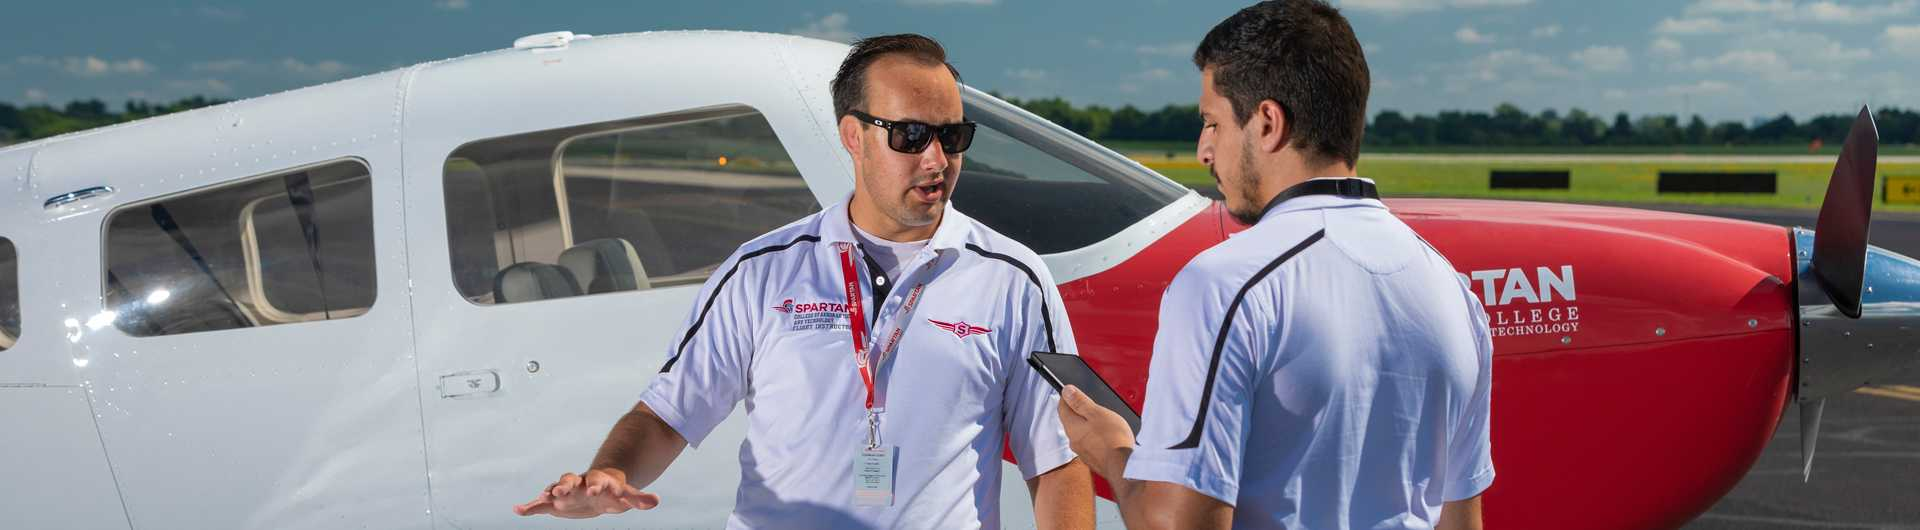 Spartan College flight instructor with student in front of plane horizontal